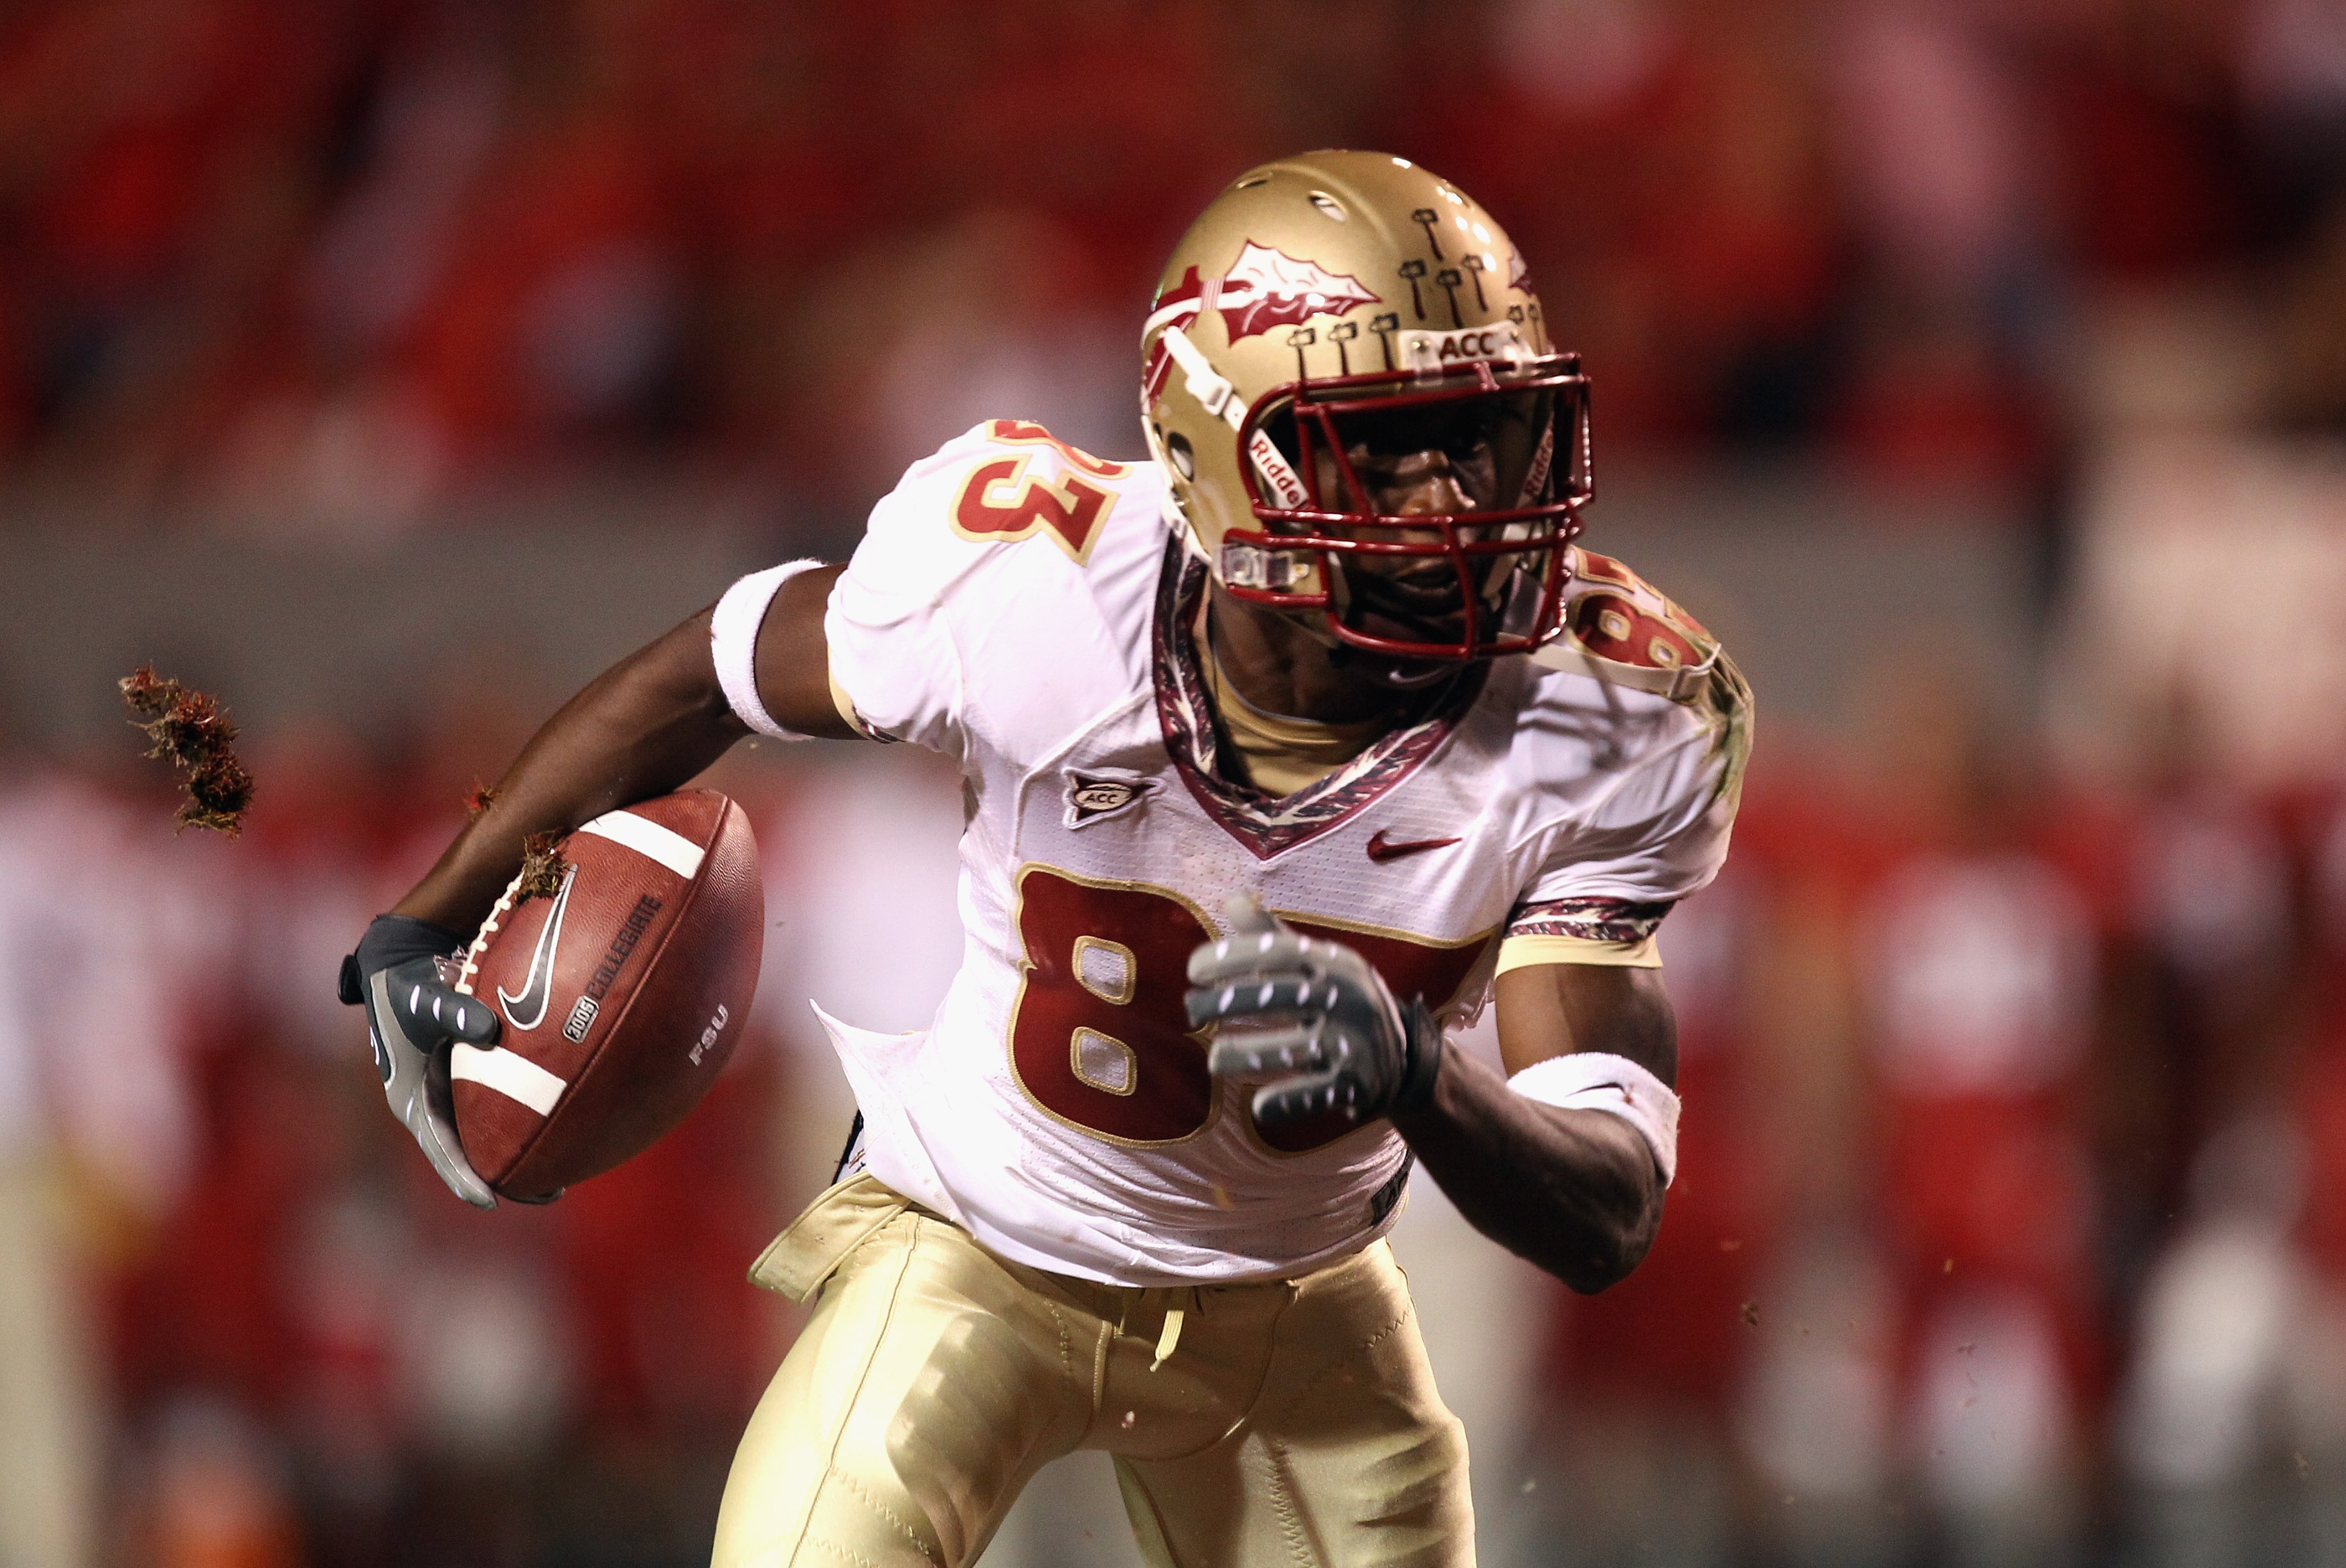 RALEIGH, NC - OCTOBER 28:  Bert Reed #83 of the Florida State Seminoles runs with the ball against the North Carolina State Wolfpack during their game at Carter-Finley Stadium on October 28, 2010 in Raleigh, North Carolina.  (Photo by Streeter Lecka/Getty